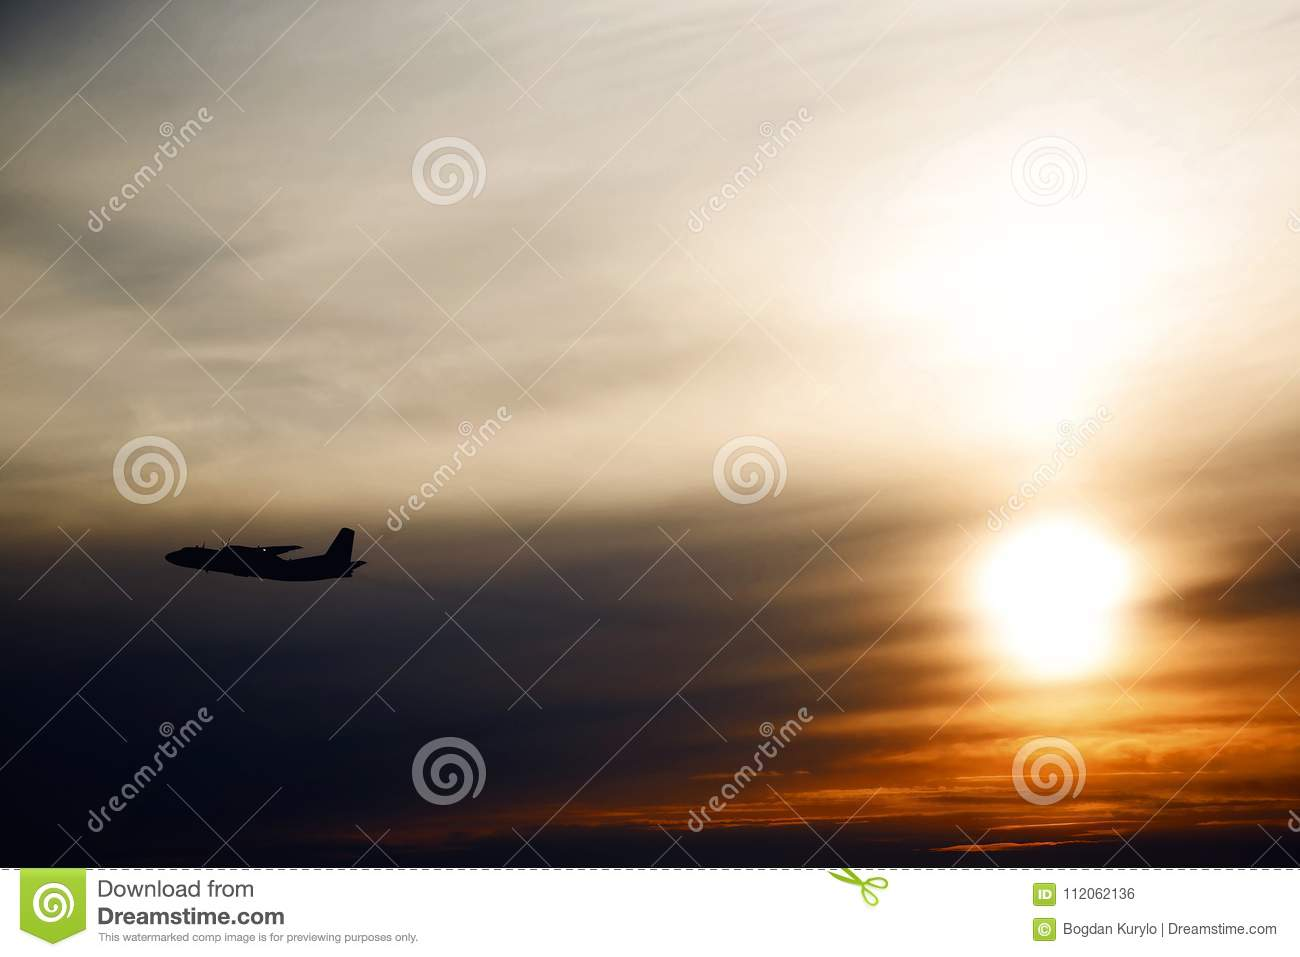 Plane Flying At Sun In Sunset Sky  Airplane In The Air